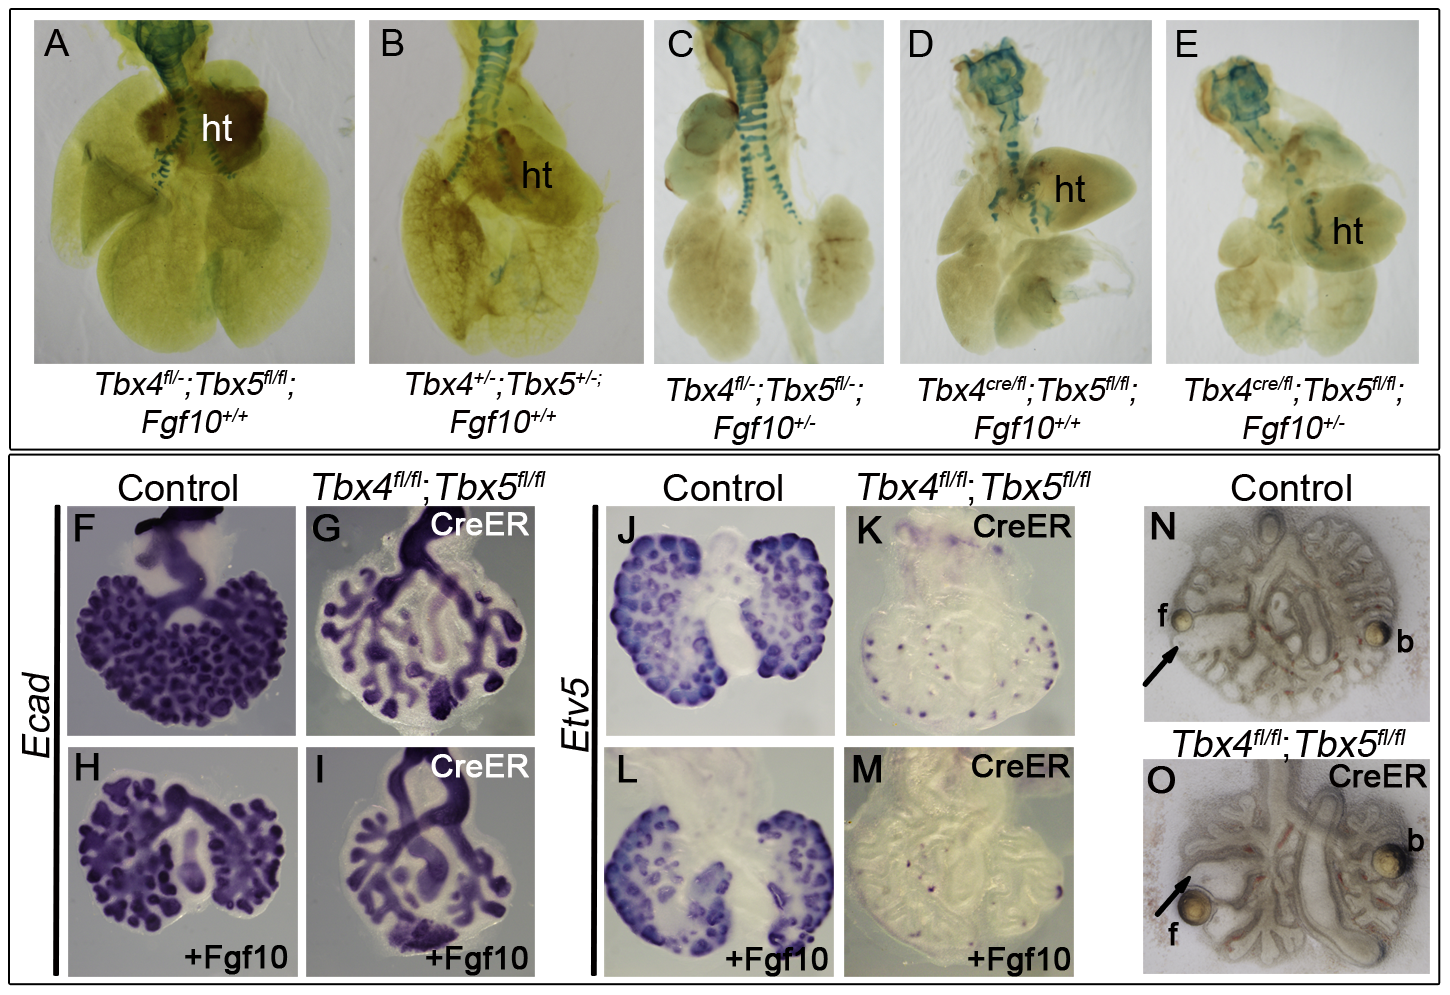 <i>Tbx4</i> and <i>Tbx5</i> interact with <i>Fgf10</i>, but FGF10 fails to rescue <i>Tbx4-</i> and <i>Tbx5</i>-deficient lungs.